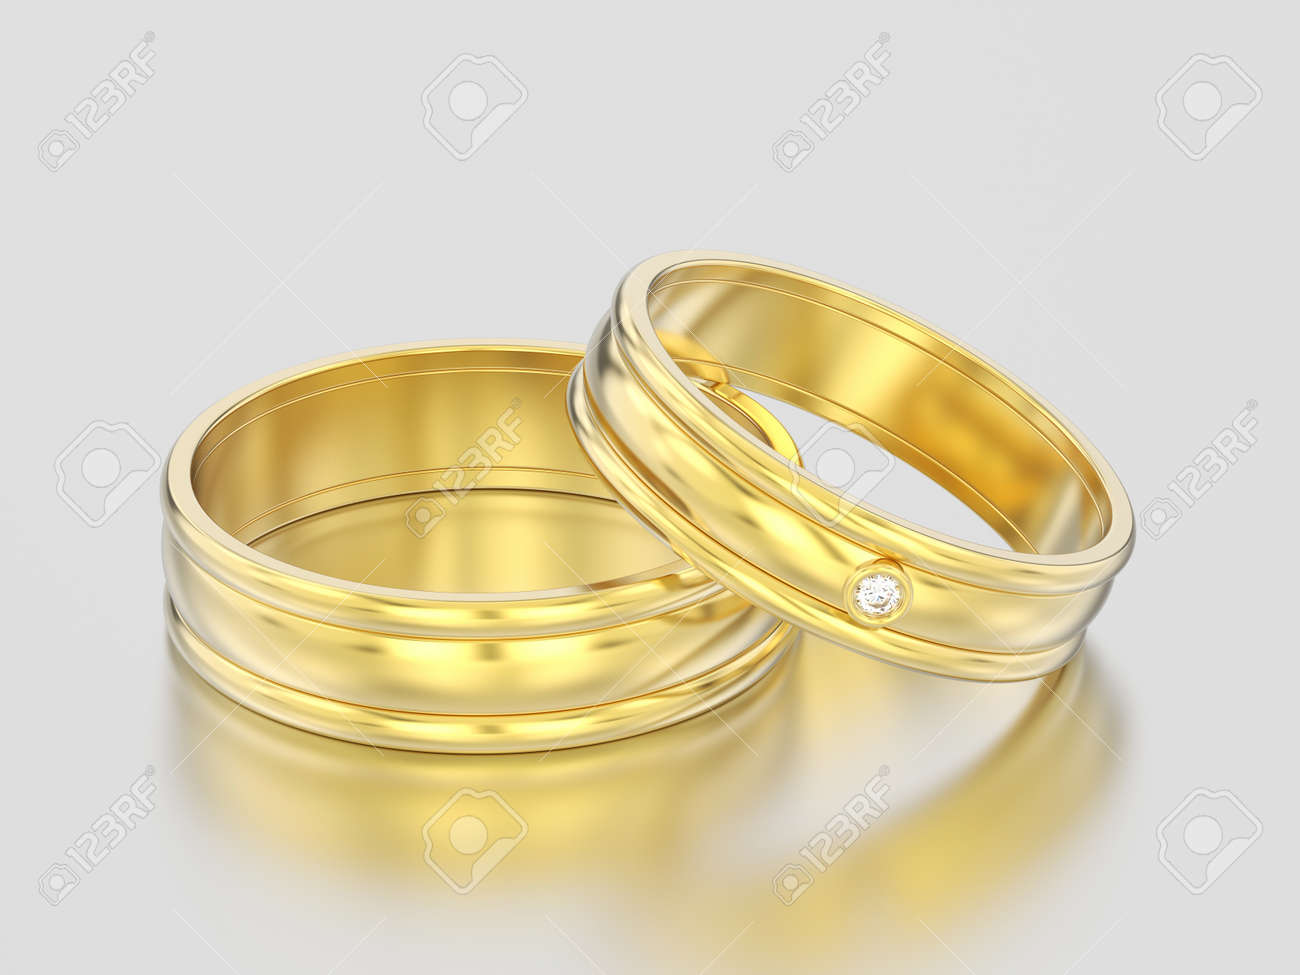 d35a658772 3D illustration two yellow gold matching couples wedding diamond rings  bands on a gray background Stock